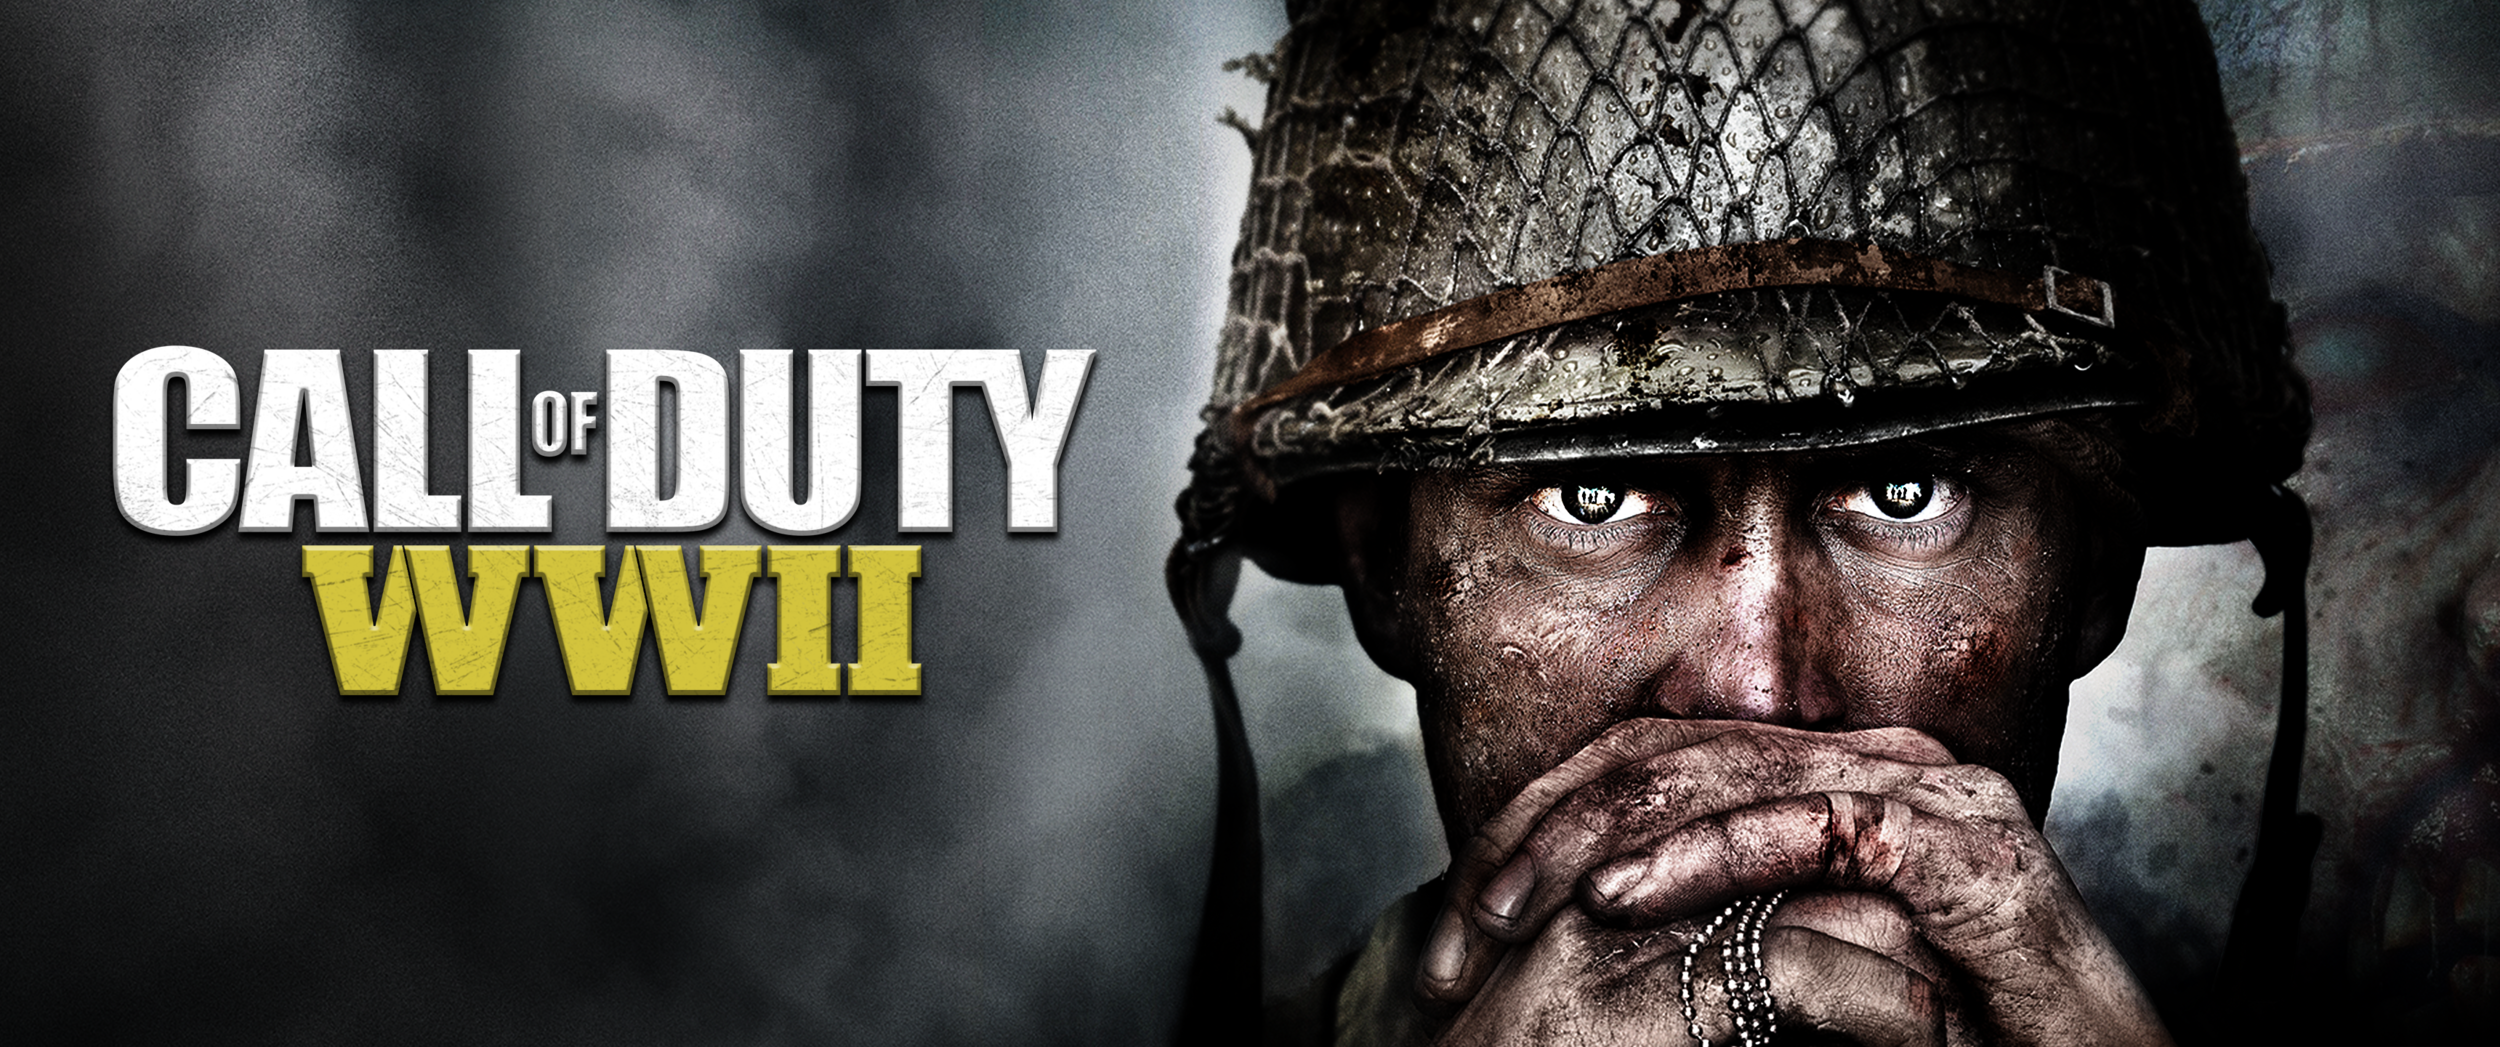 WW2 Let's Play - A playthrough of Call of Duty WW2's campagin mode.